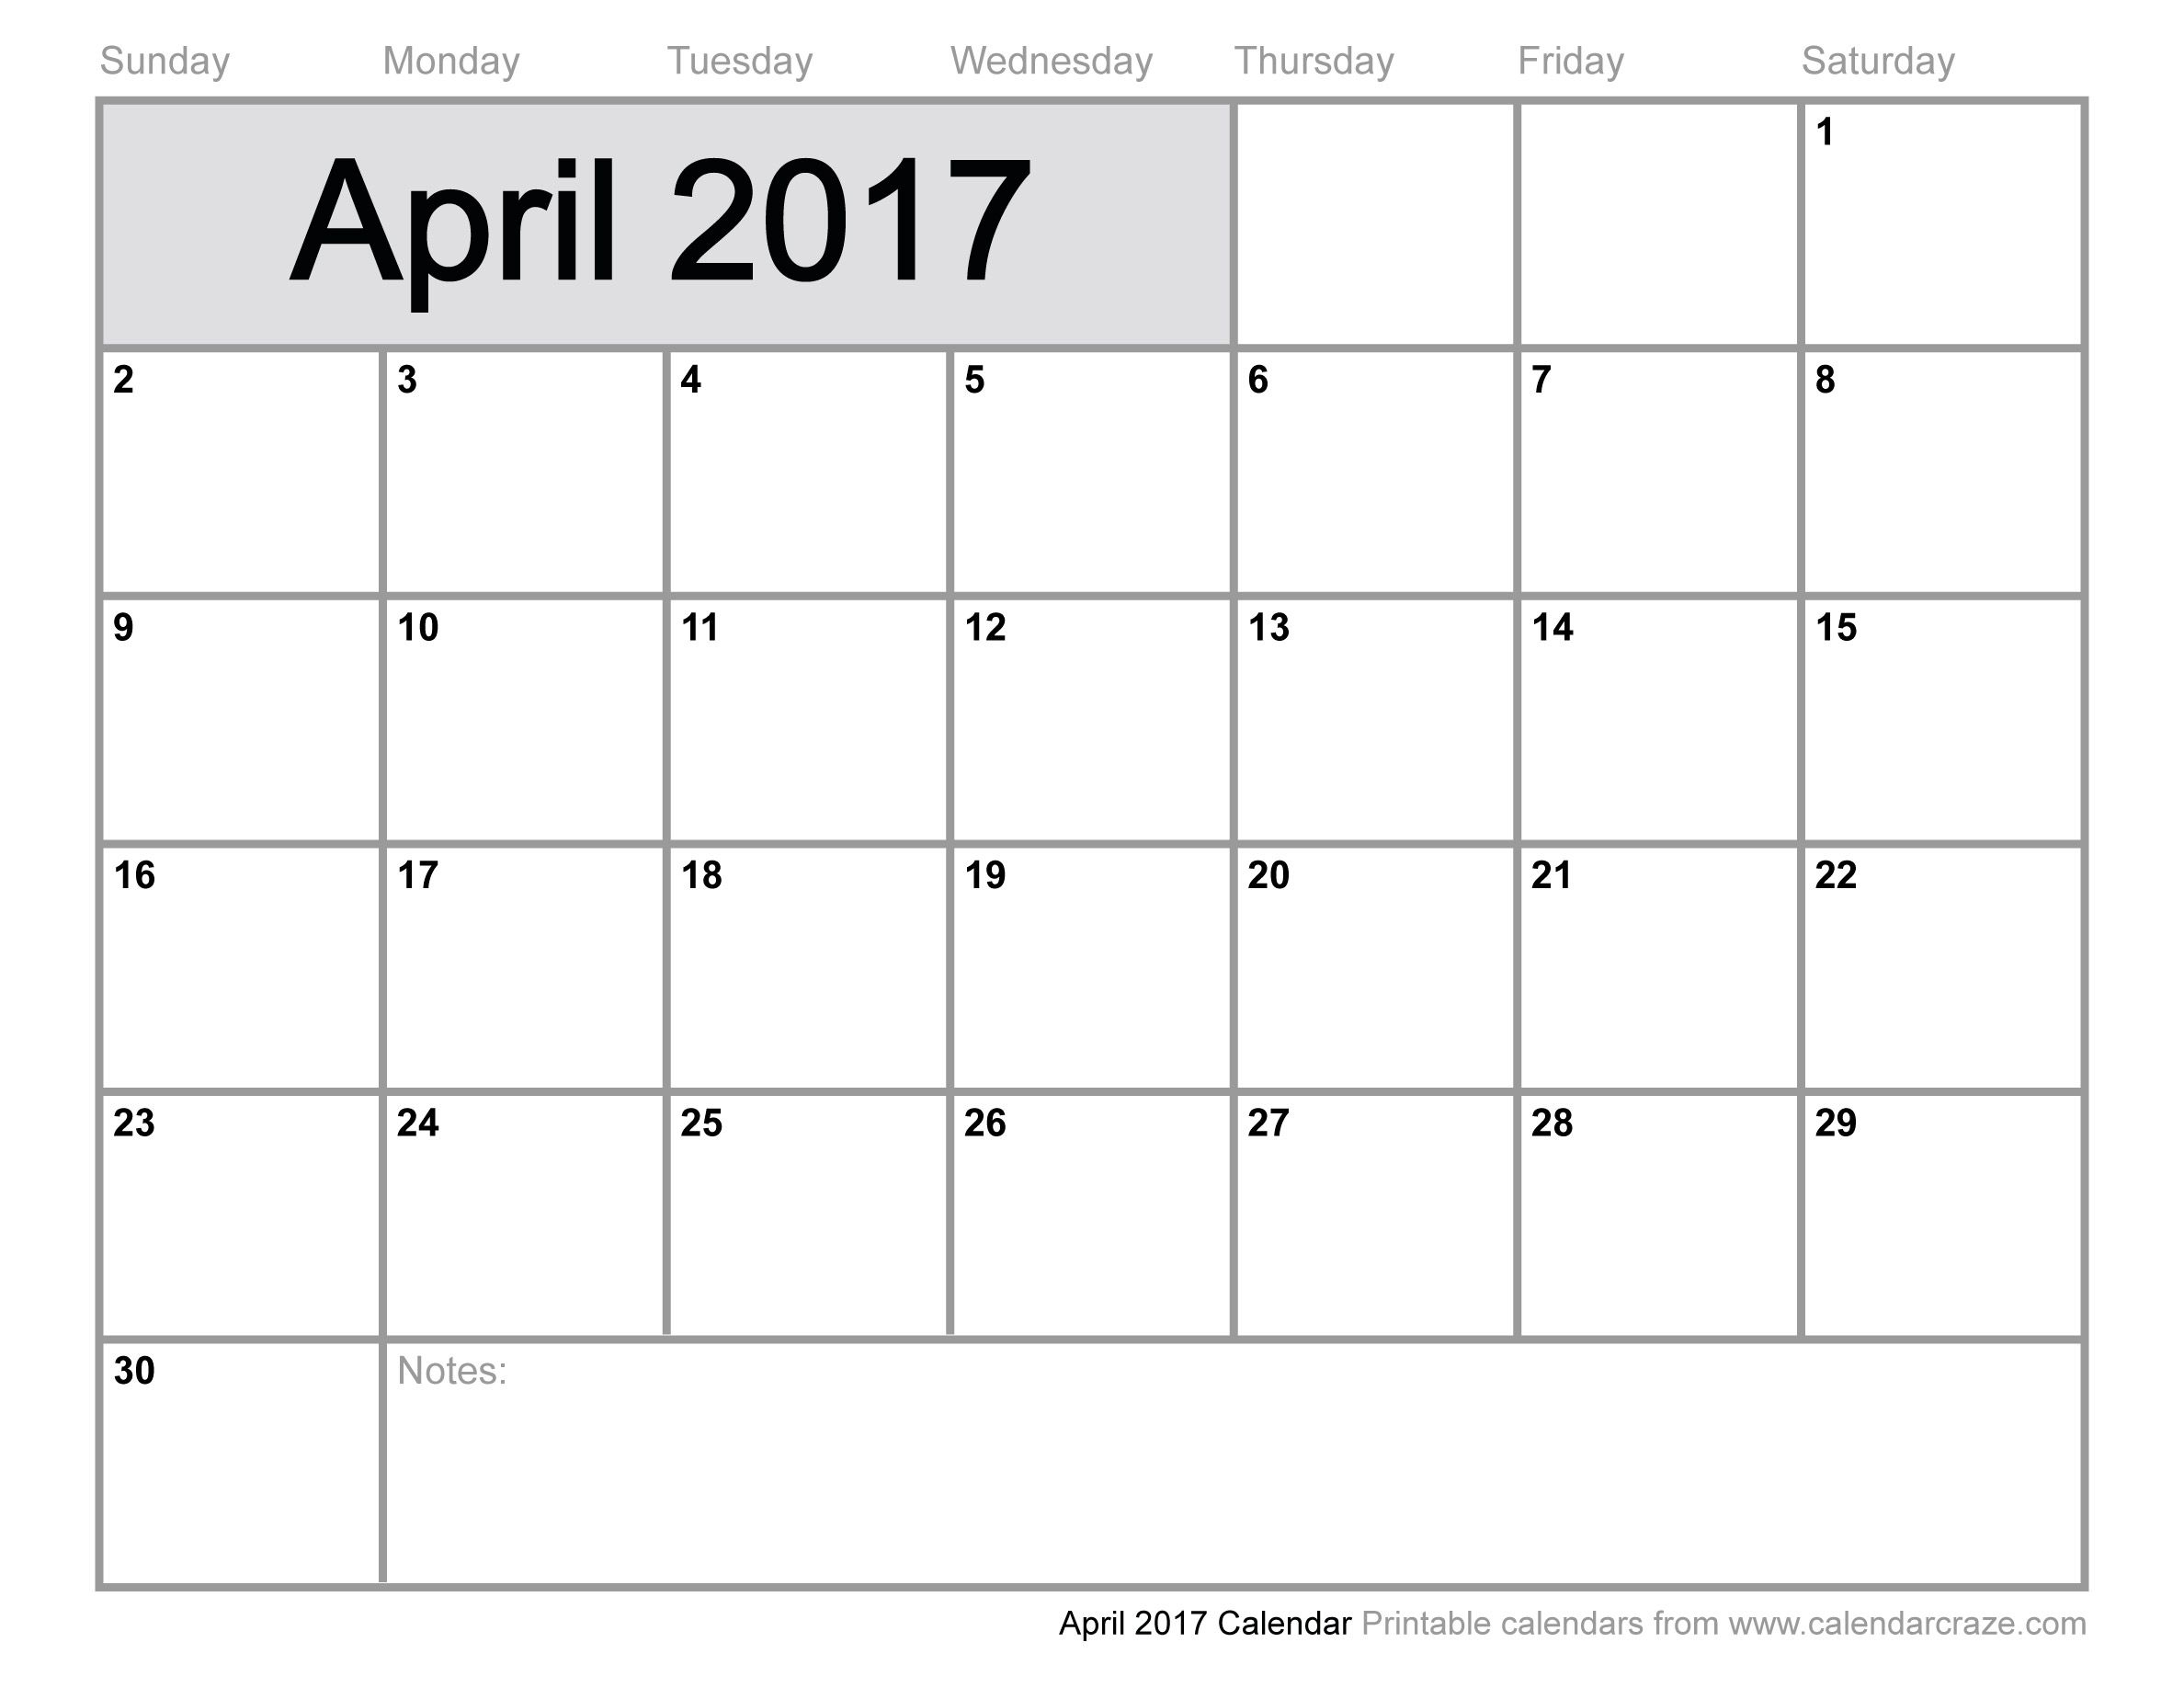 Best 20+ April calendar 2017 ideas on Pinterest | Calendar of 2017 ...